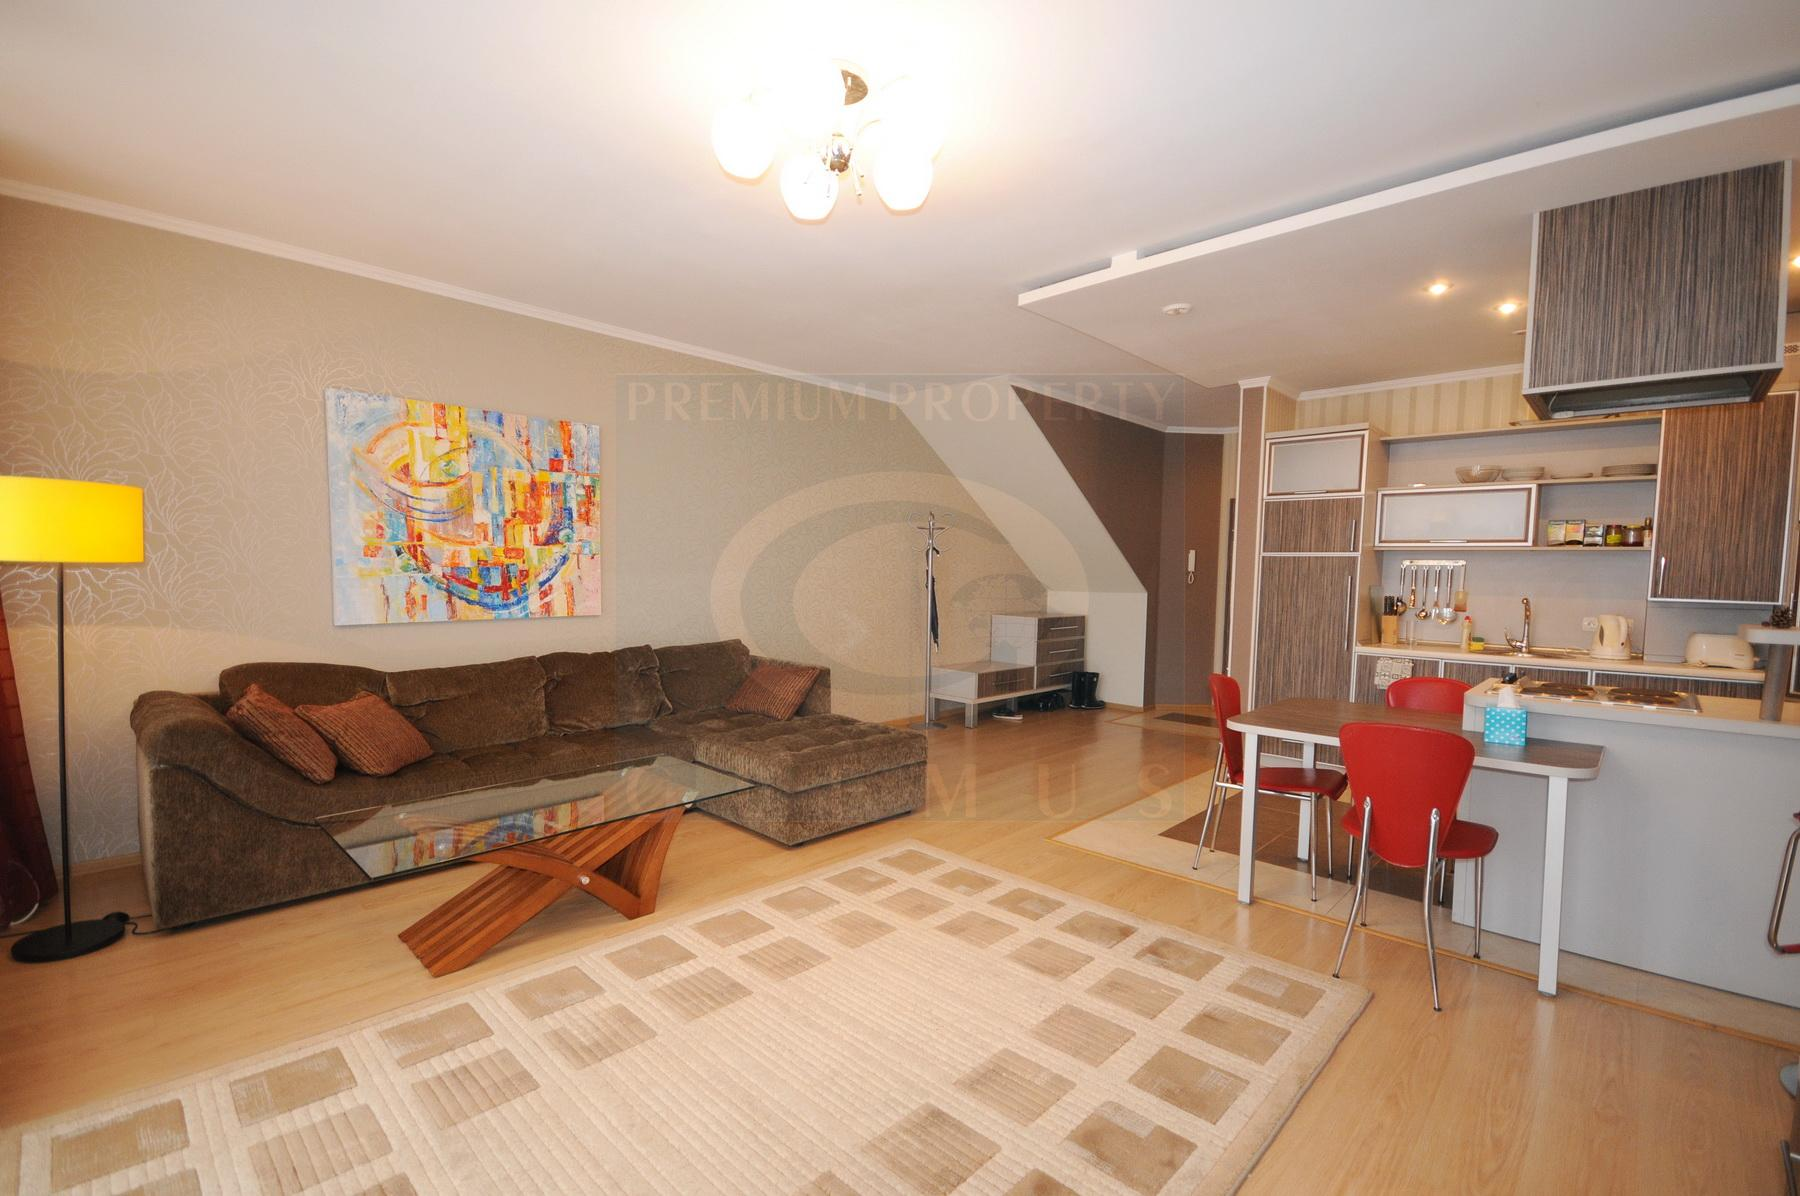 Rent Short Term Apartment In Chisinau